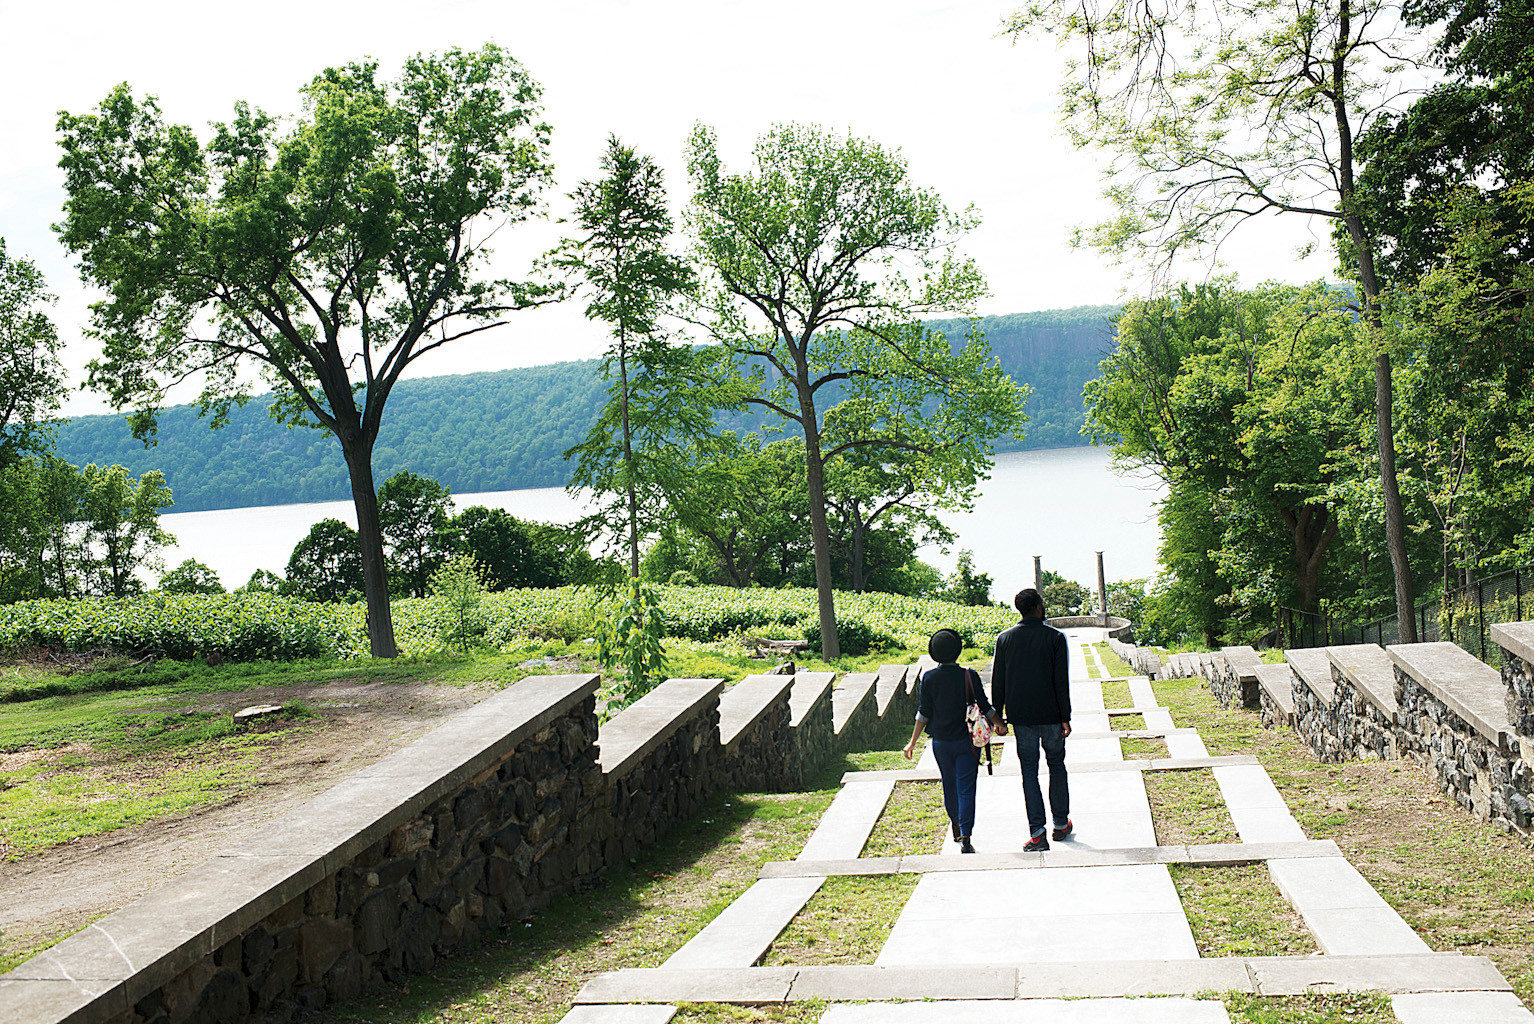 A young couple takes the stairs leading to a viewing platform called the Overlook, offering views of the Hudson River and Palisades.